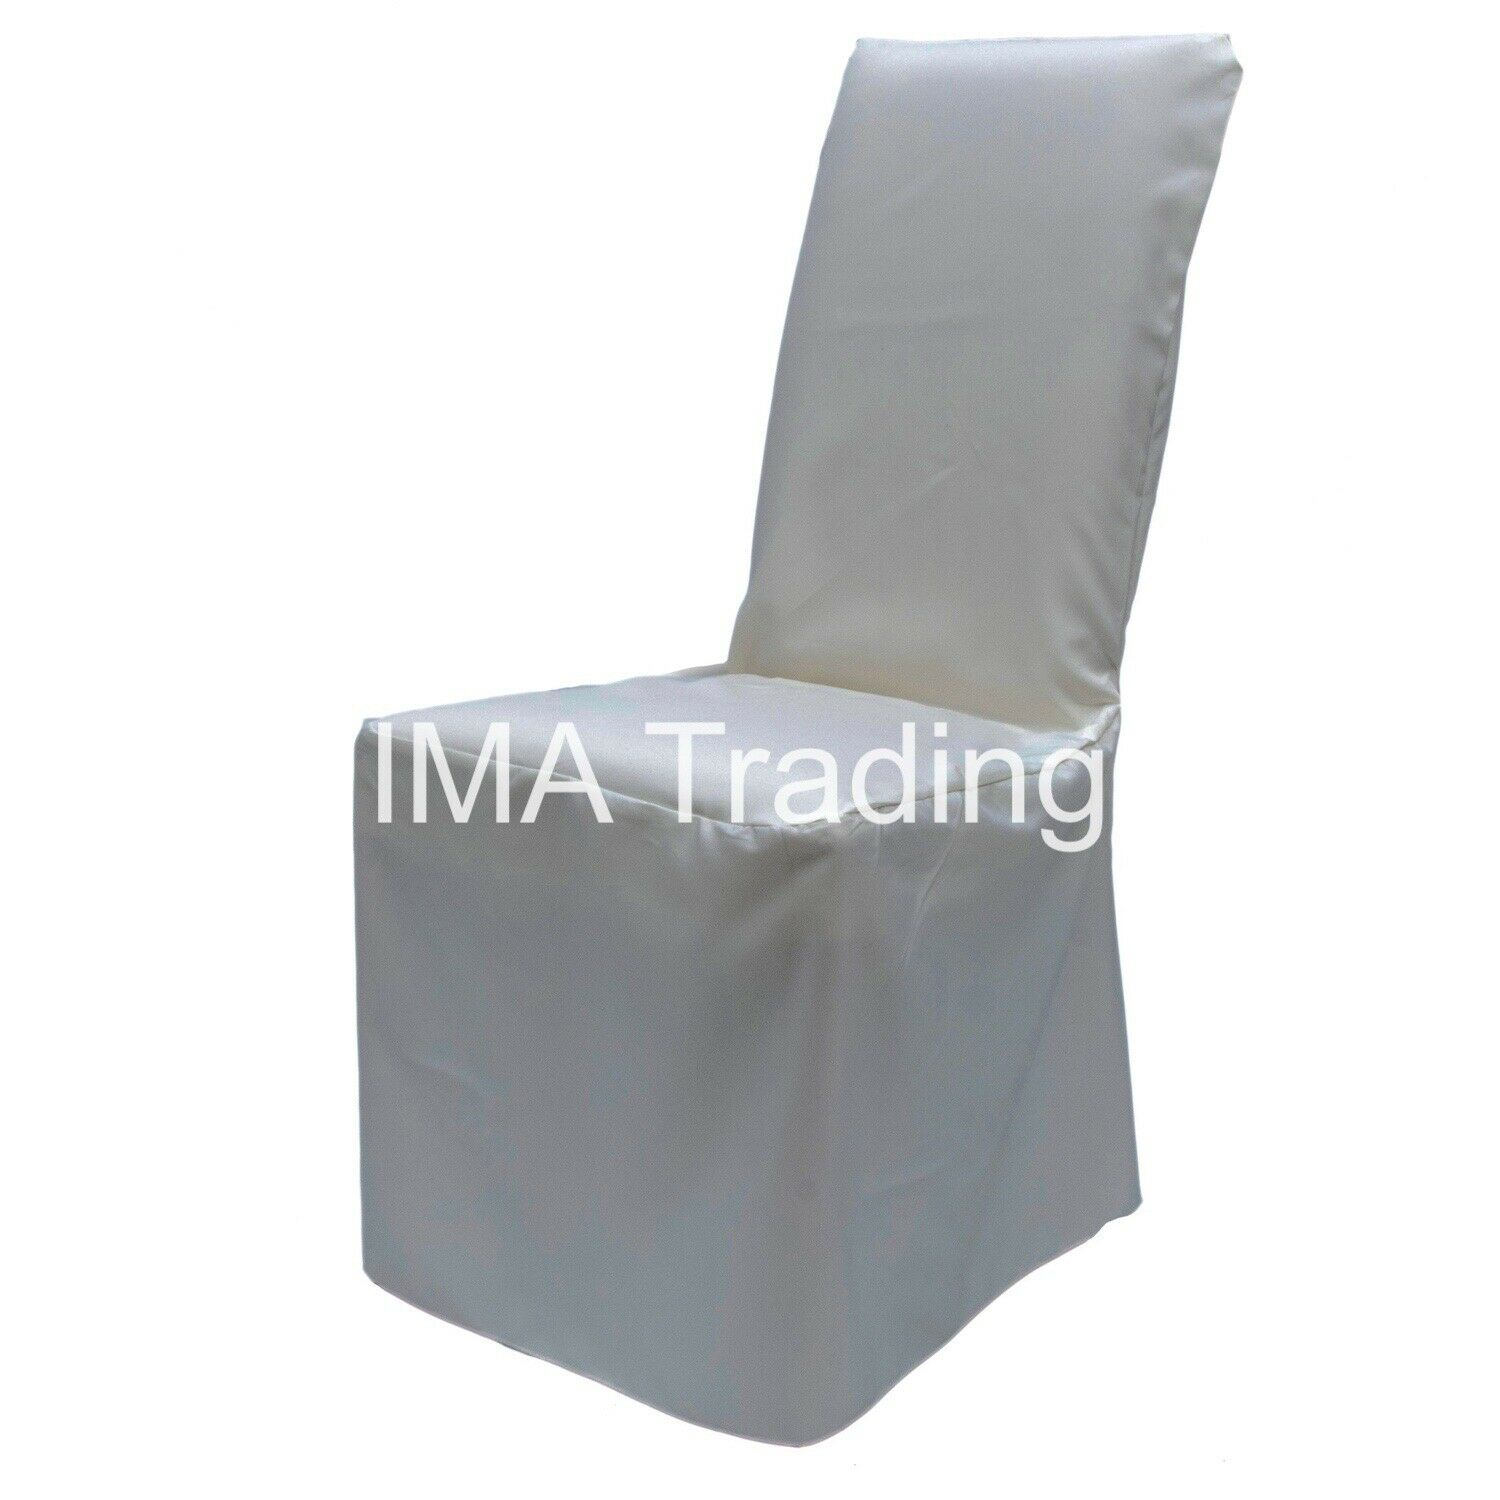 100 Ivoire Satin Chair Cover, Ivoire Coupe Ample Satin Polyester Chaise Cover